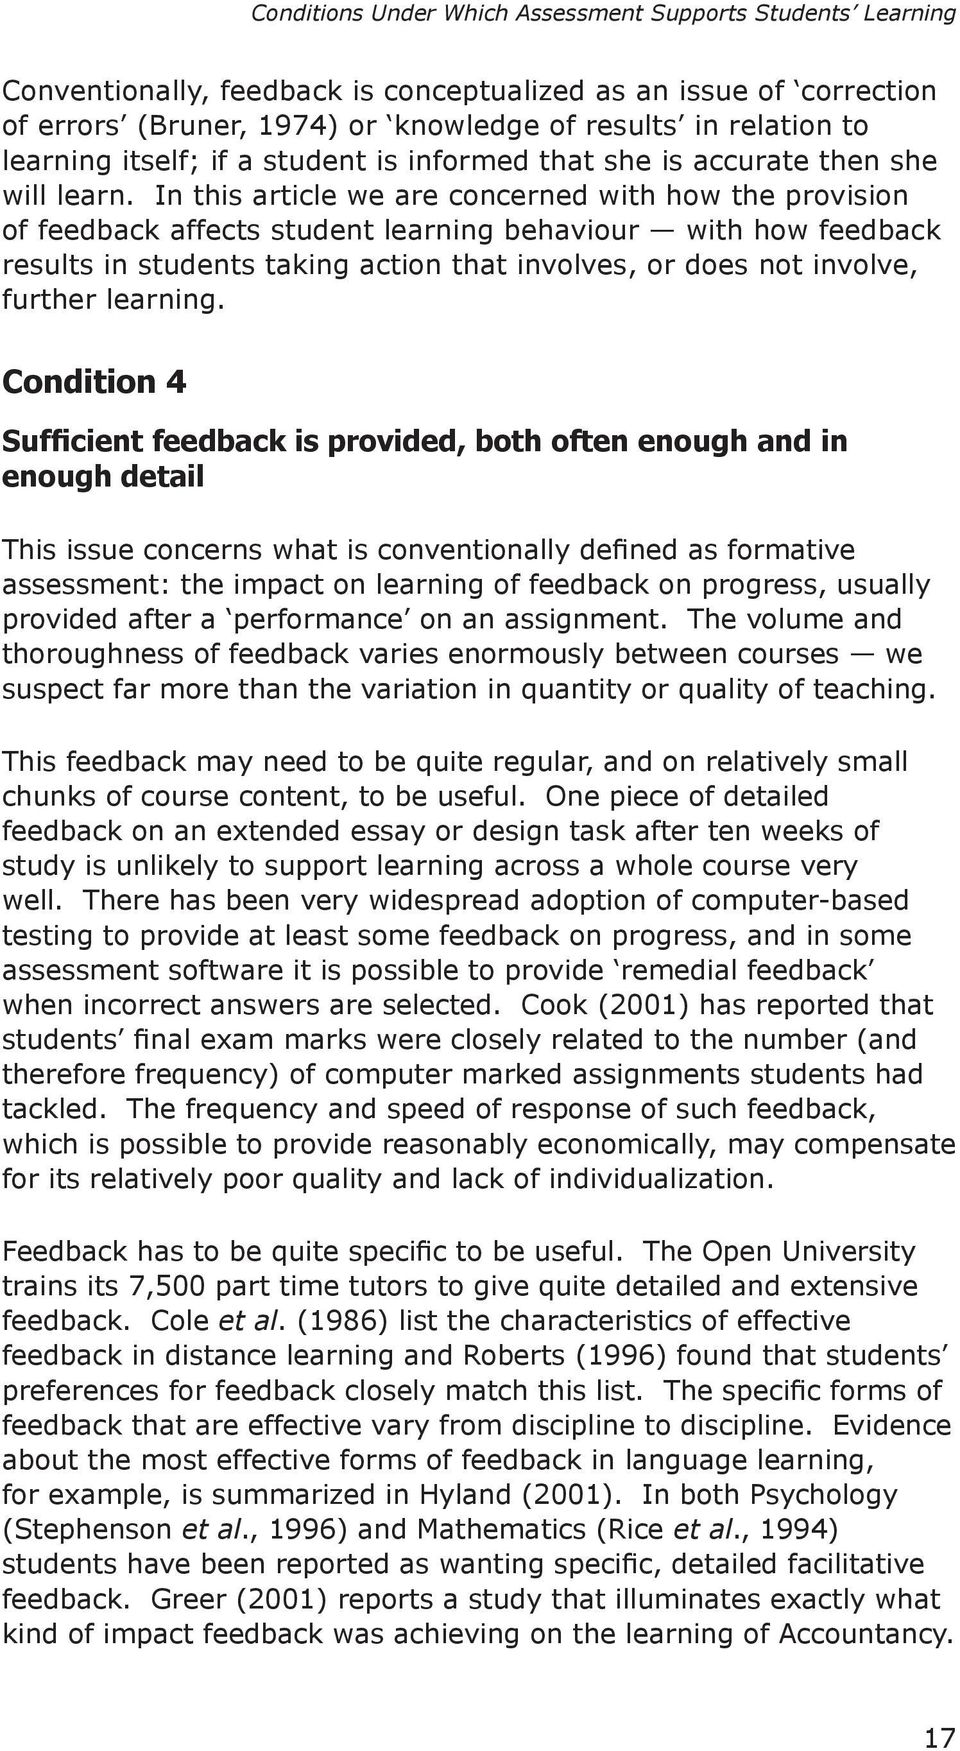 In this article we are concerned with how the provision of feedback affects student learning behaviour with how feedback results in students taking action that involves, or does not involve, further